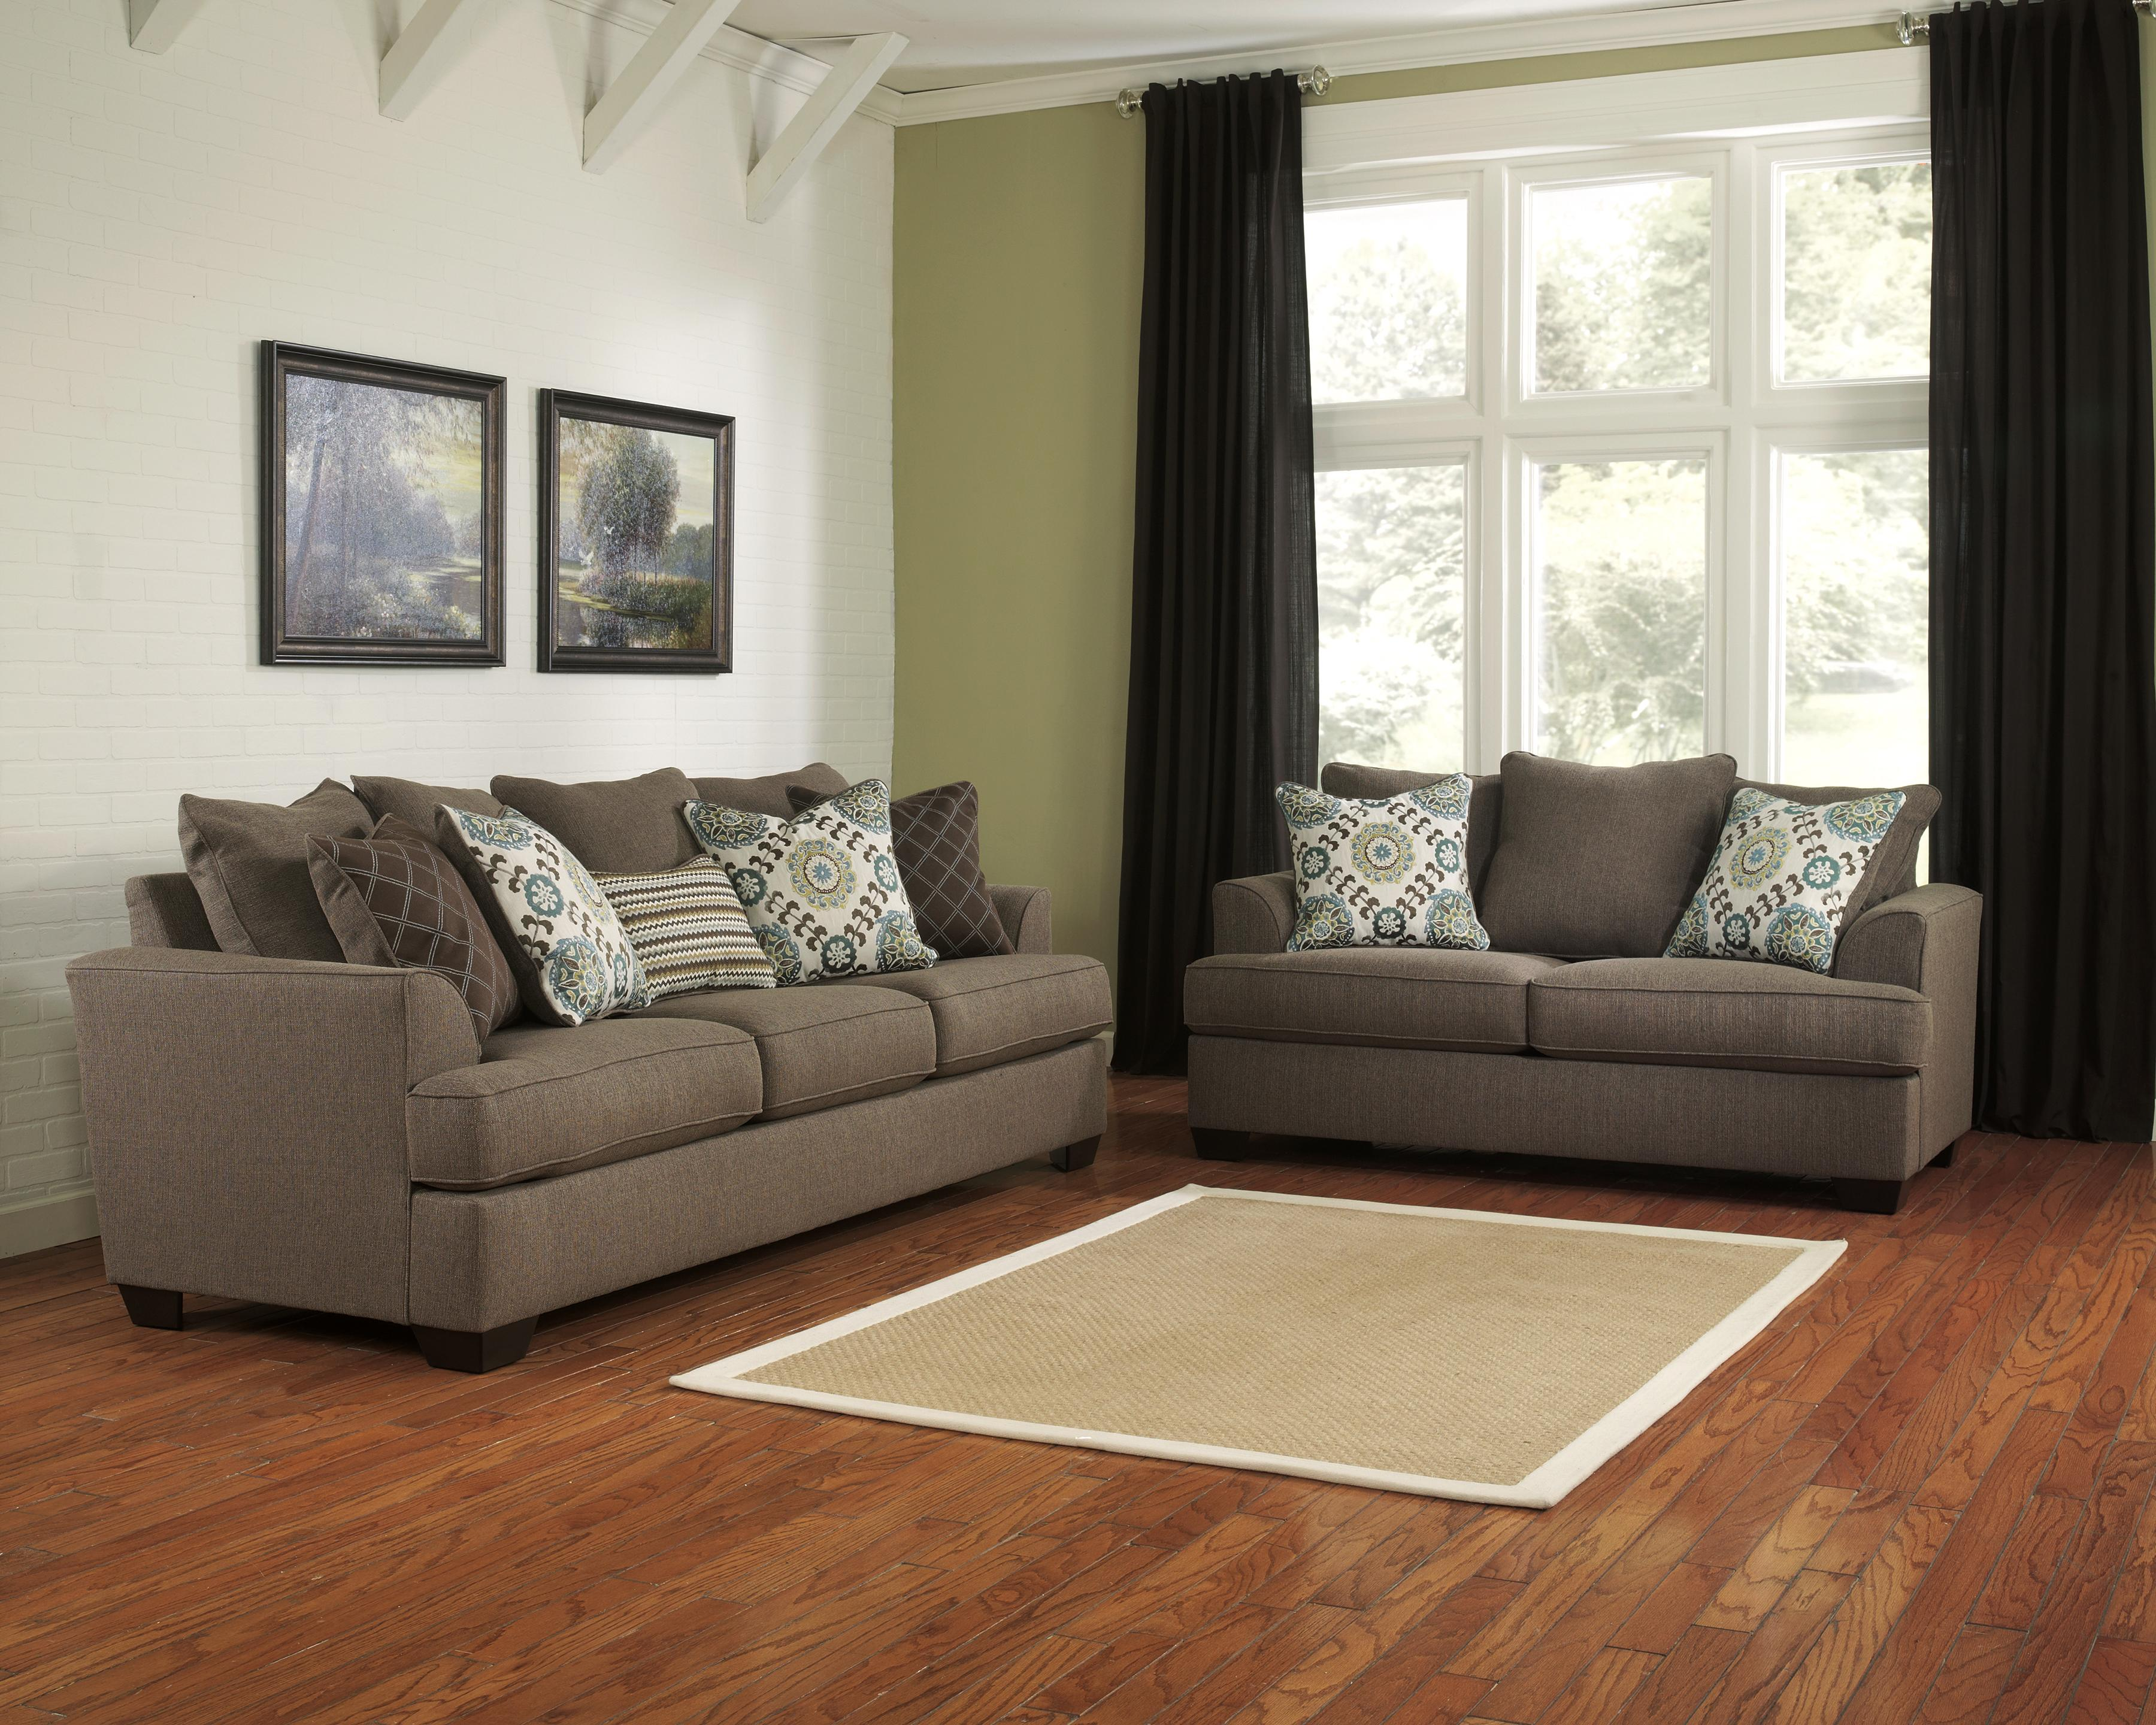 Ashley Furniture Corley - Slate Stationary Living Room Group - Item Number: 28800 Living Room Group 1